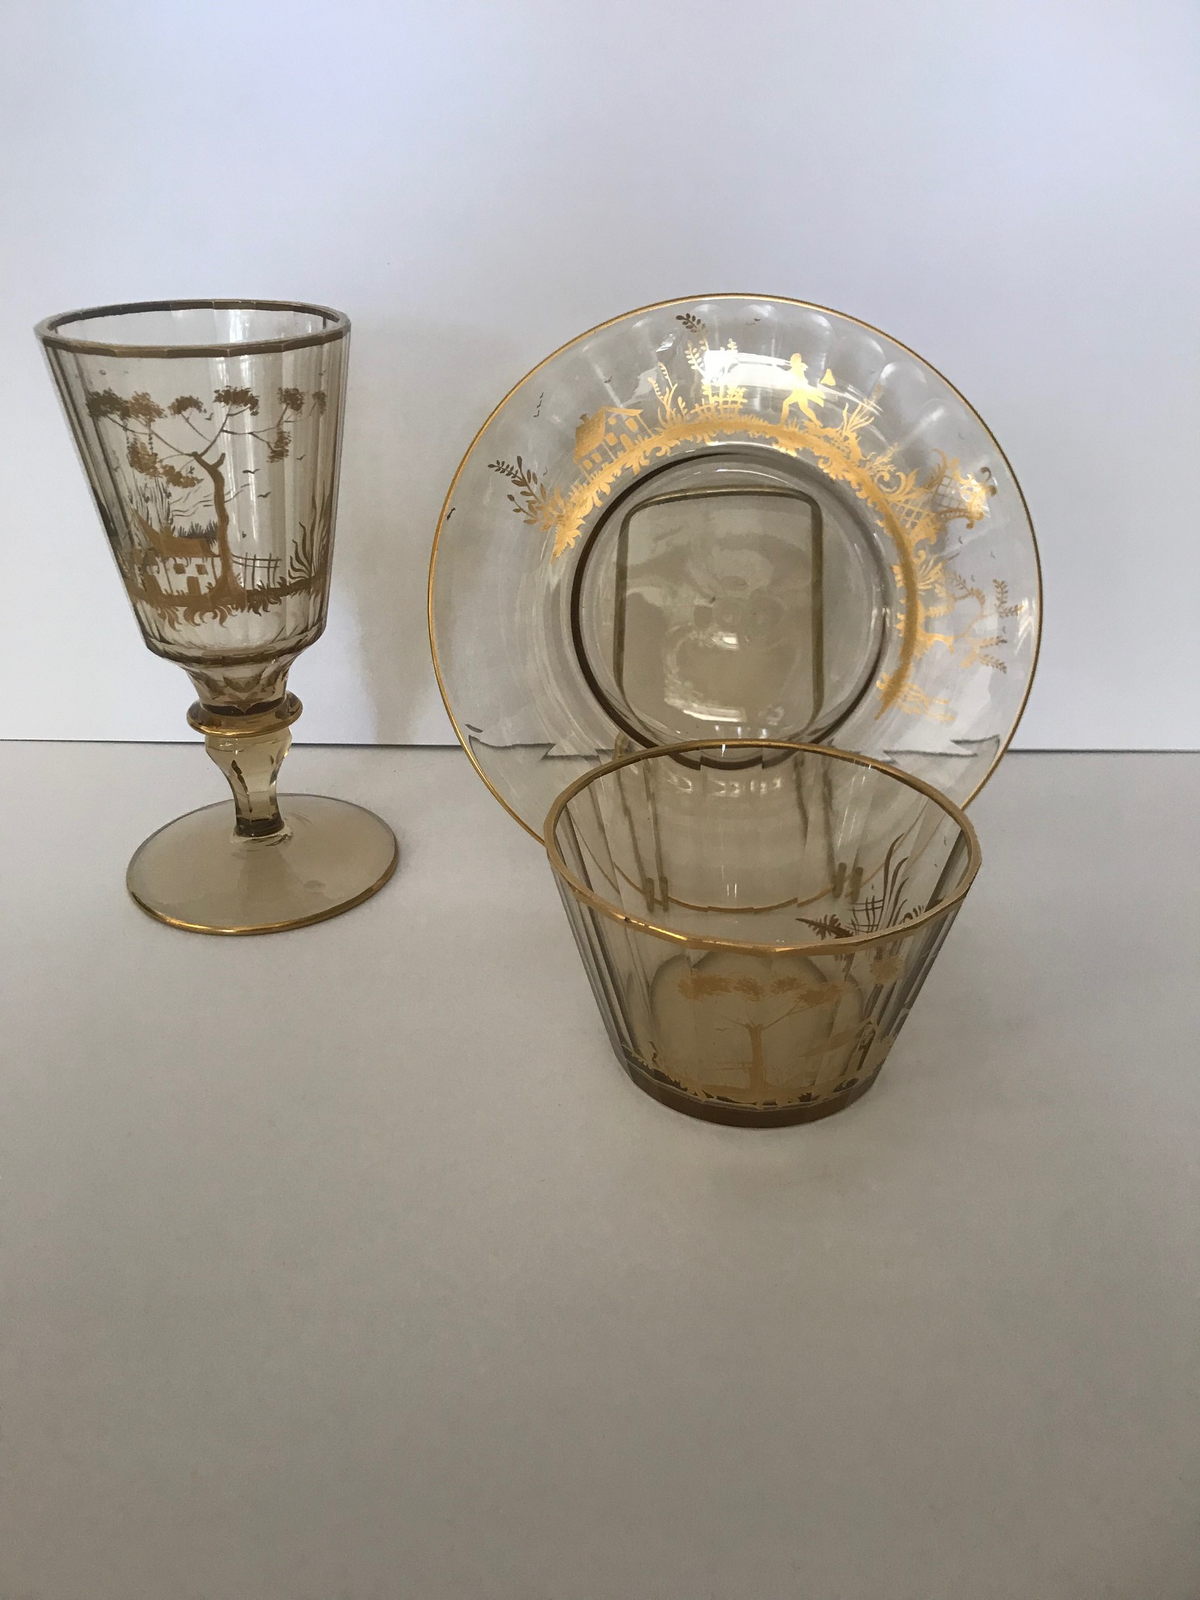 Antique Clear Glass & Gold Decorated Silhouette Set of Plates, Bowls, Goblets